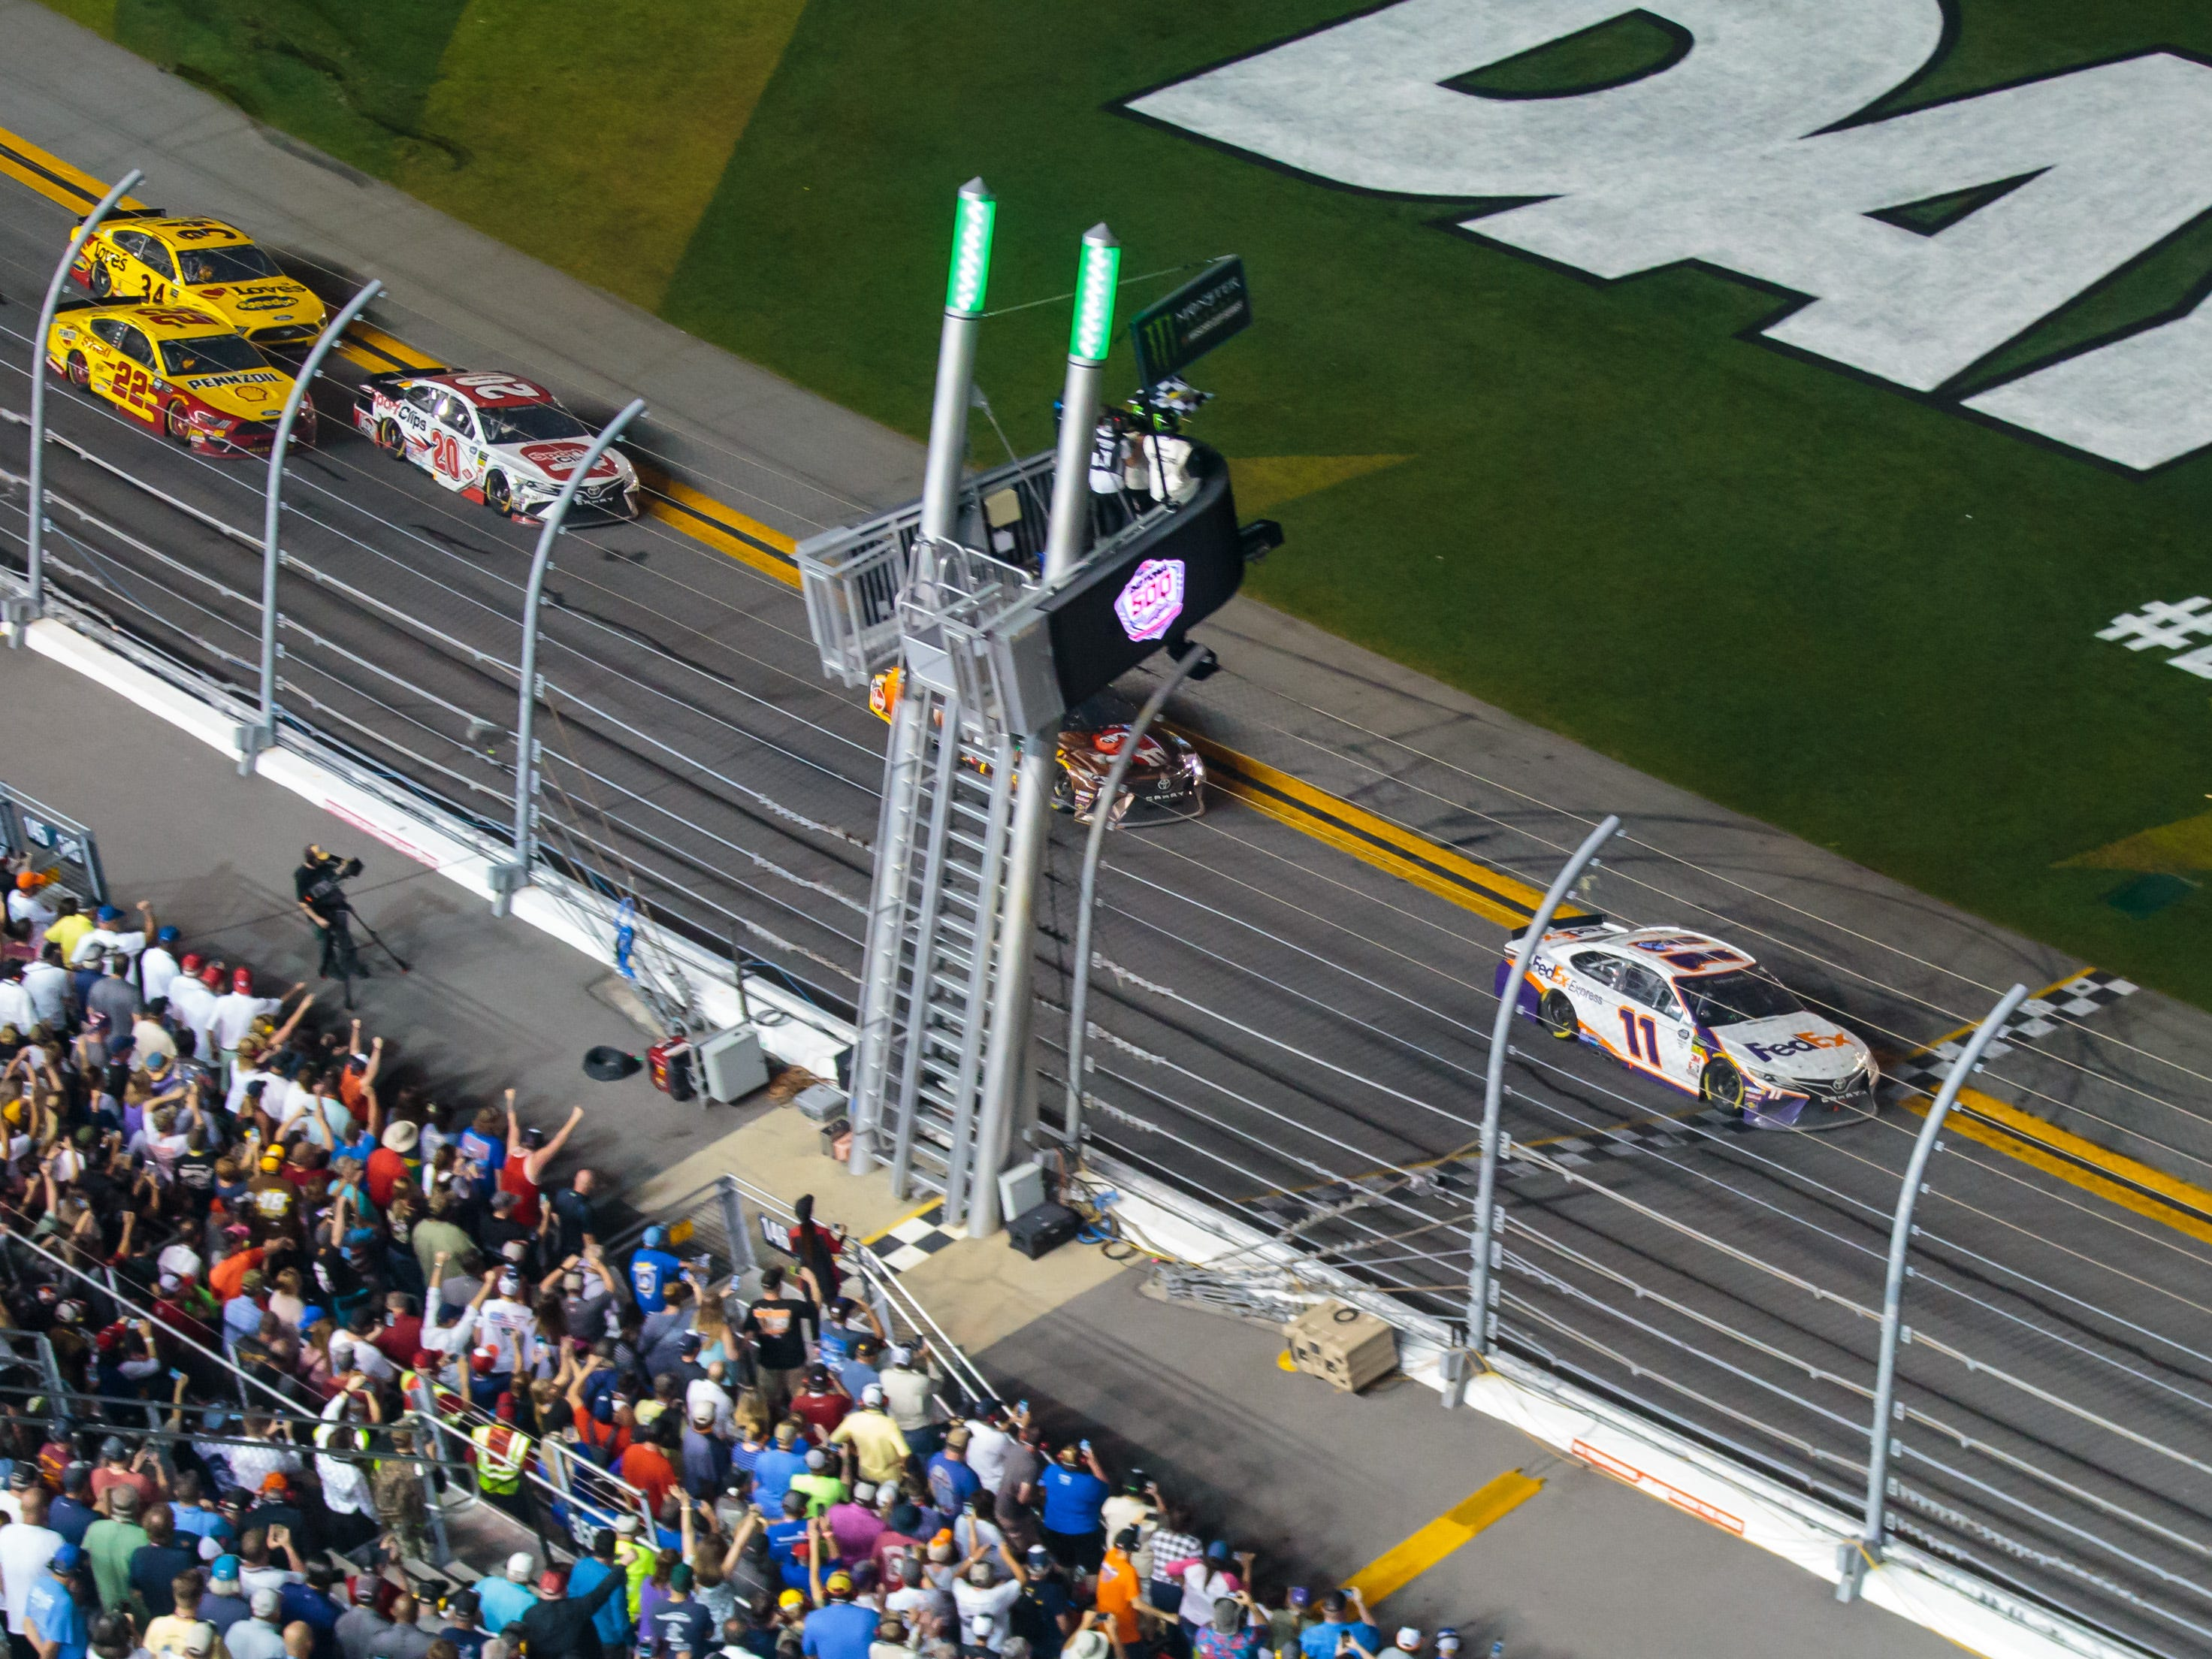 NASCAR Cup Series driver Denny Hamlin (11) takes the checkered flag to win the Daytona 500 at Daytona International Speedway.